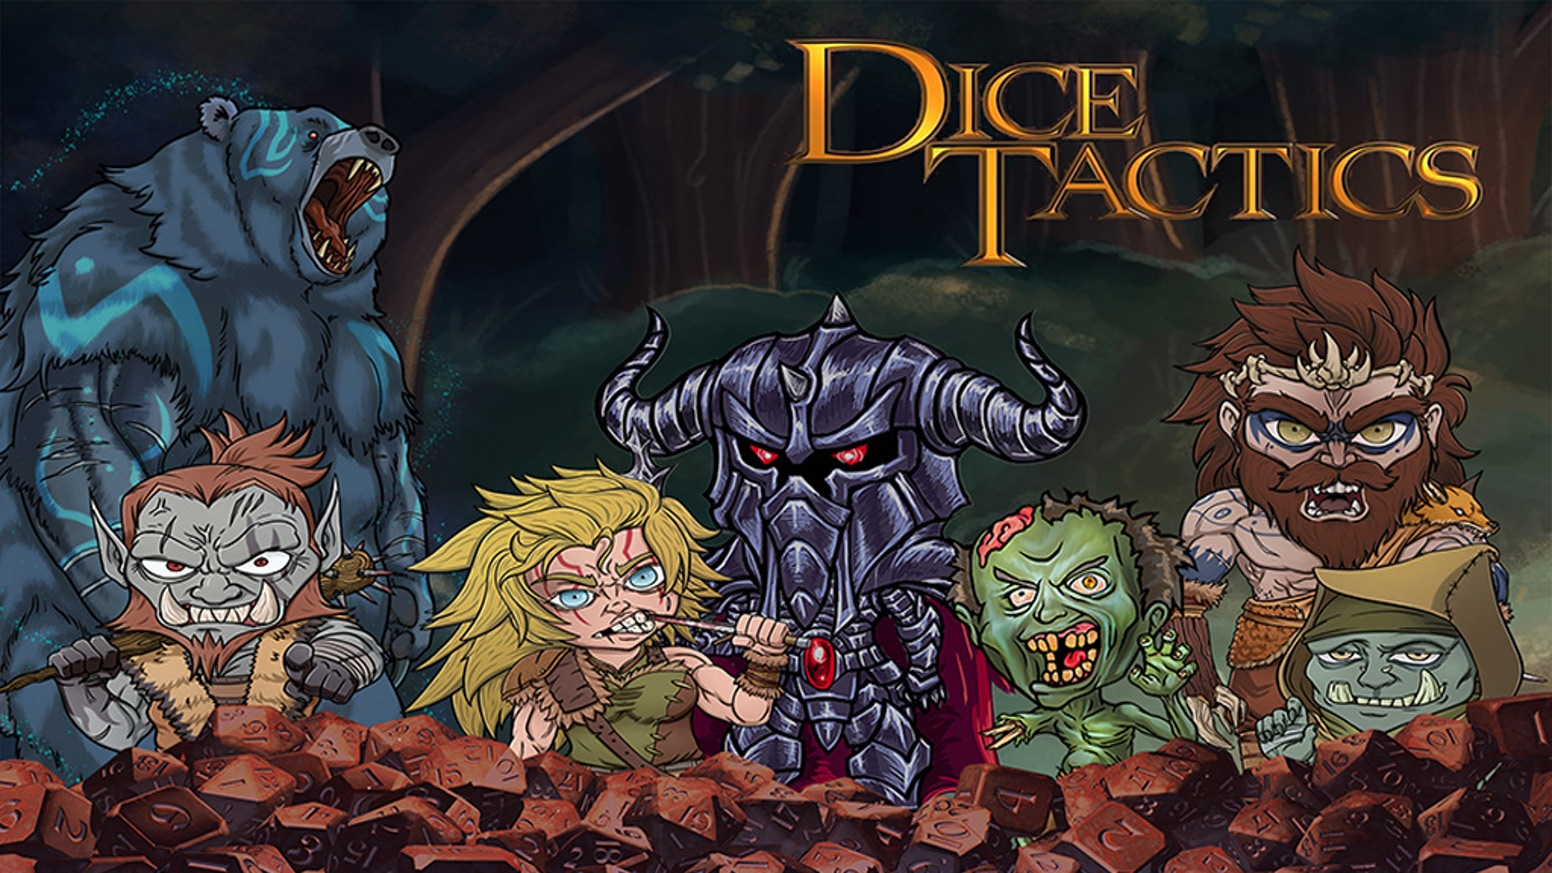 Dice Tactics: A Digital Tabletop-Like Experience by Game